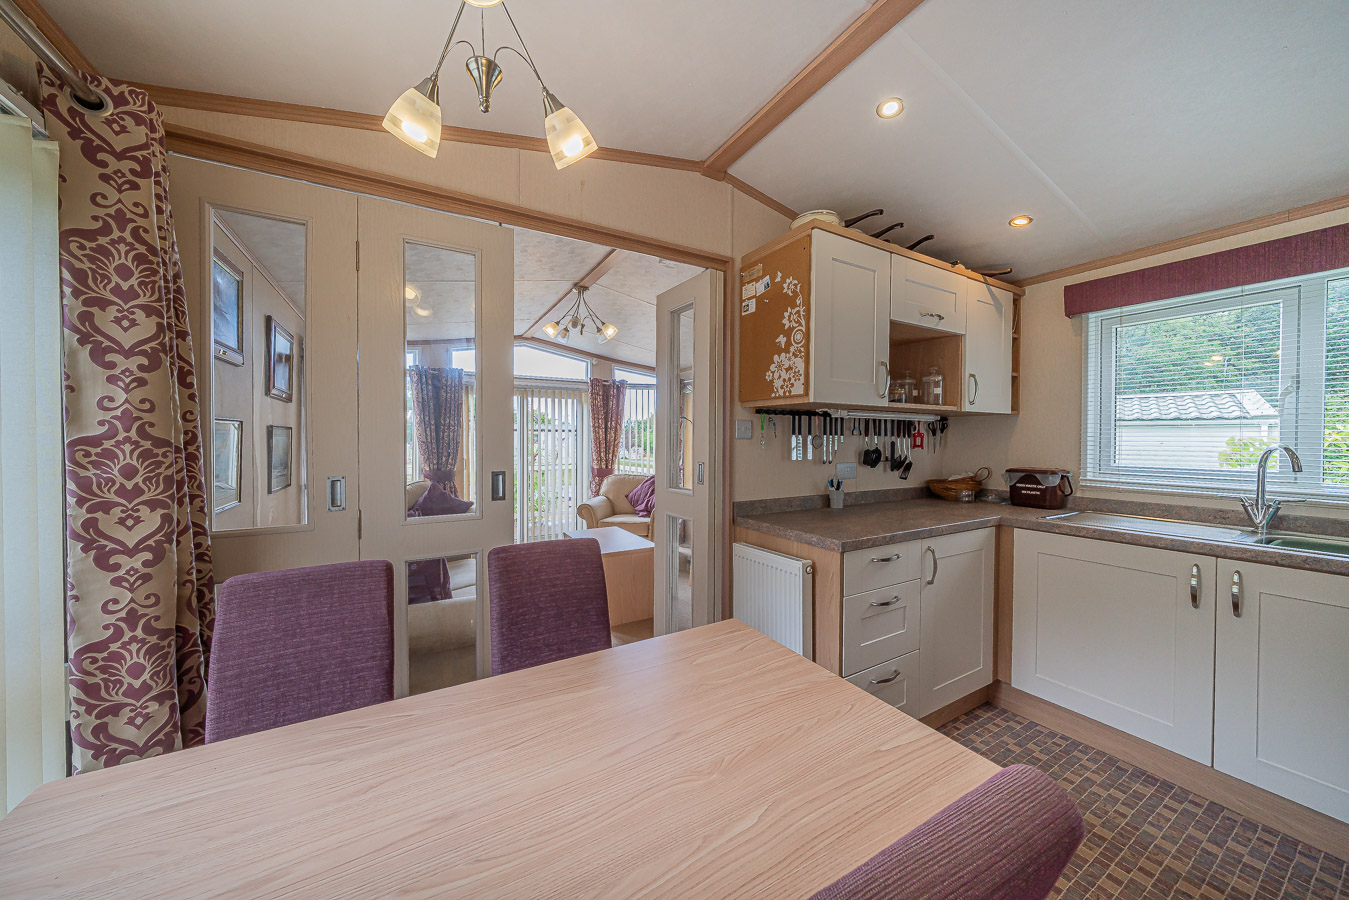 Monkton-Wyld-Static-Mobile-Holiday-Home-Sale-Plot-8-Charmouth-Lyme-Regis-West-Dorset-1